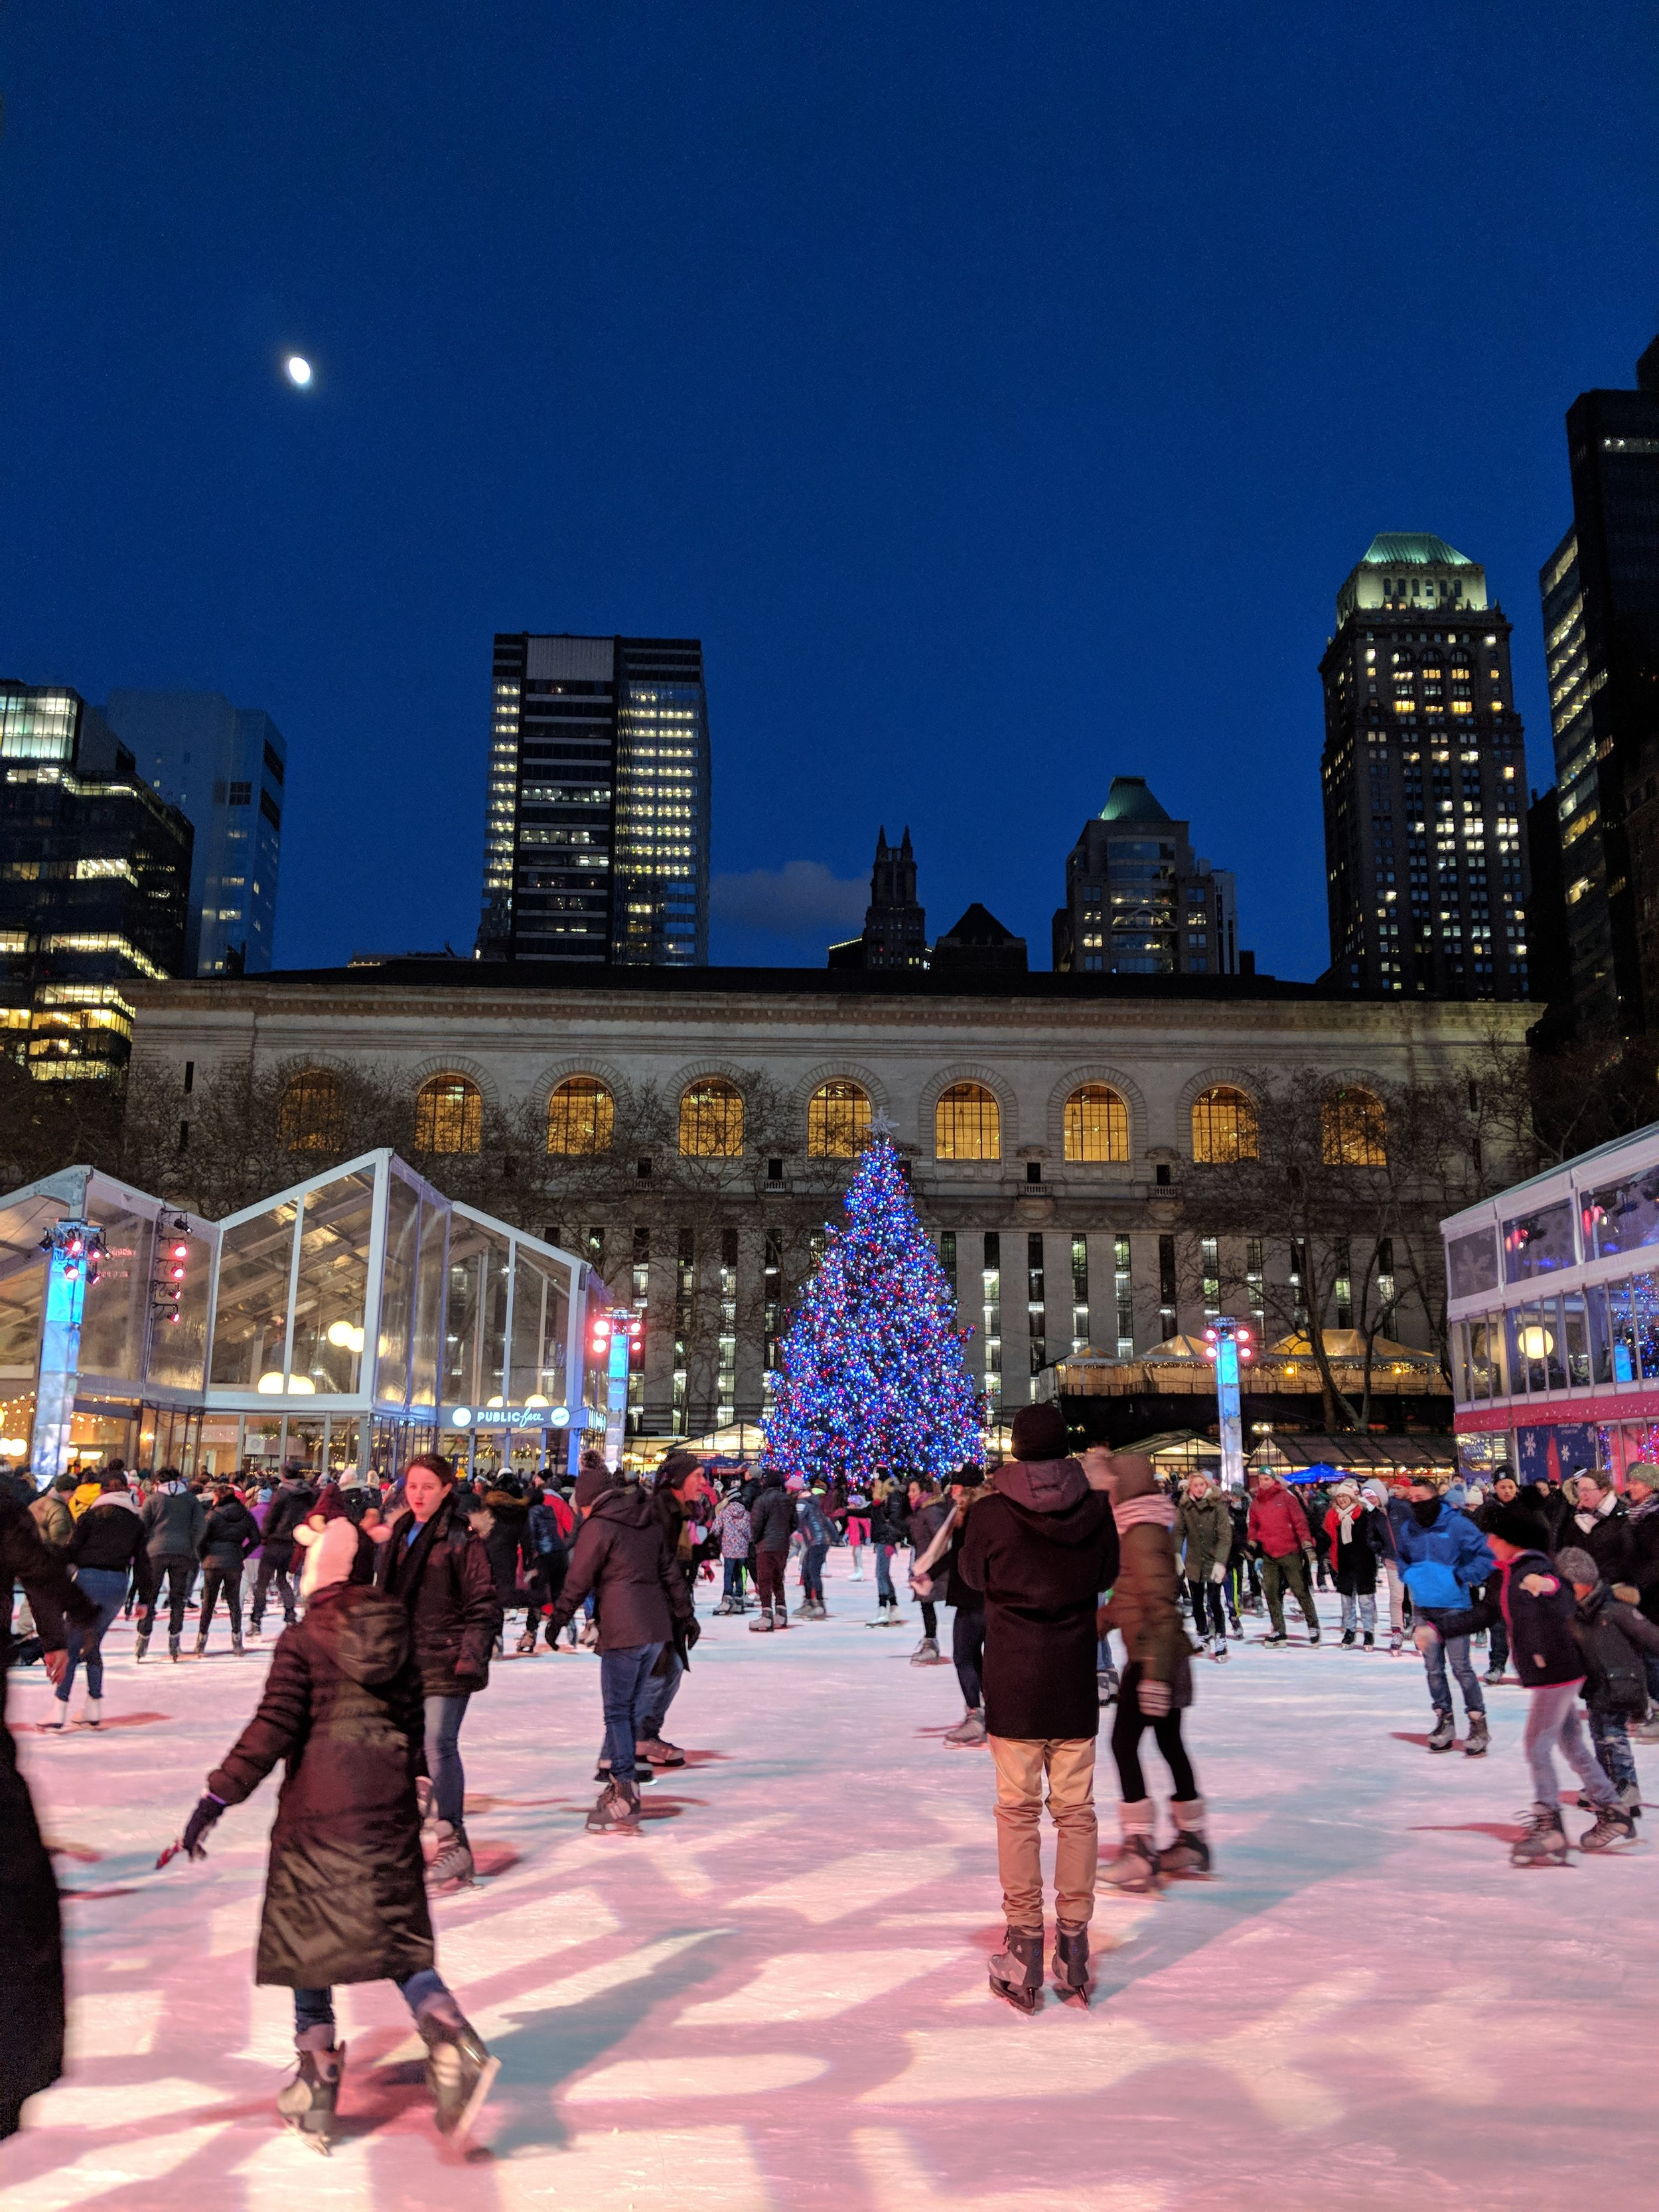 Bryant Park a few nights ago. Go check out my instagram page to see the frozen fountain...it's crazy!